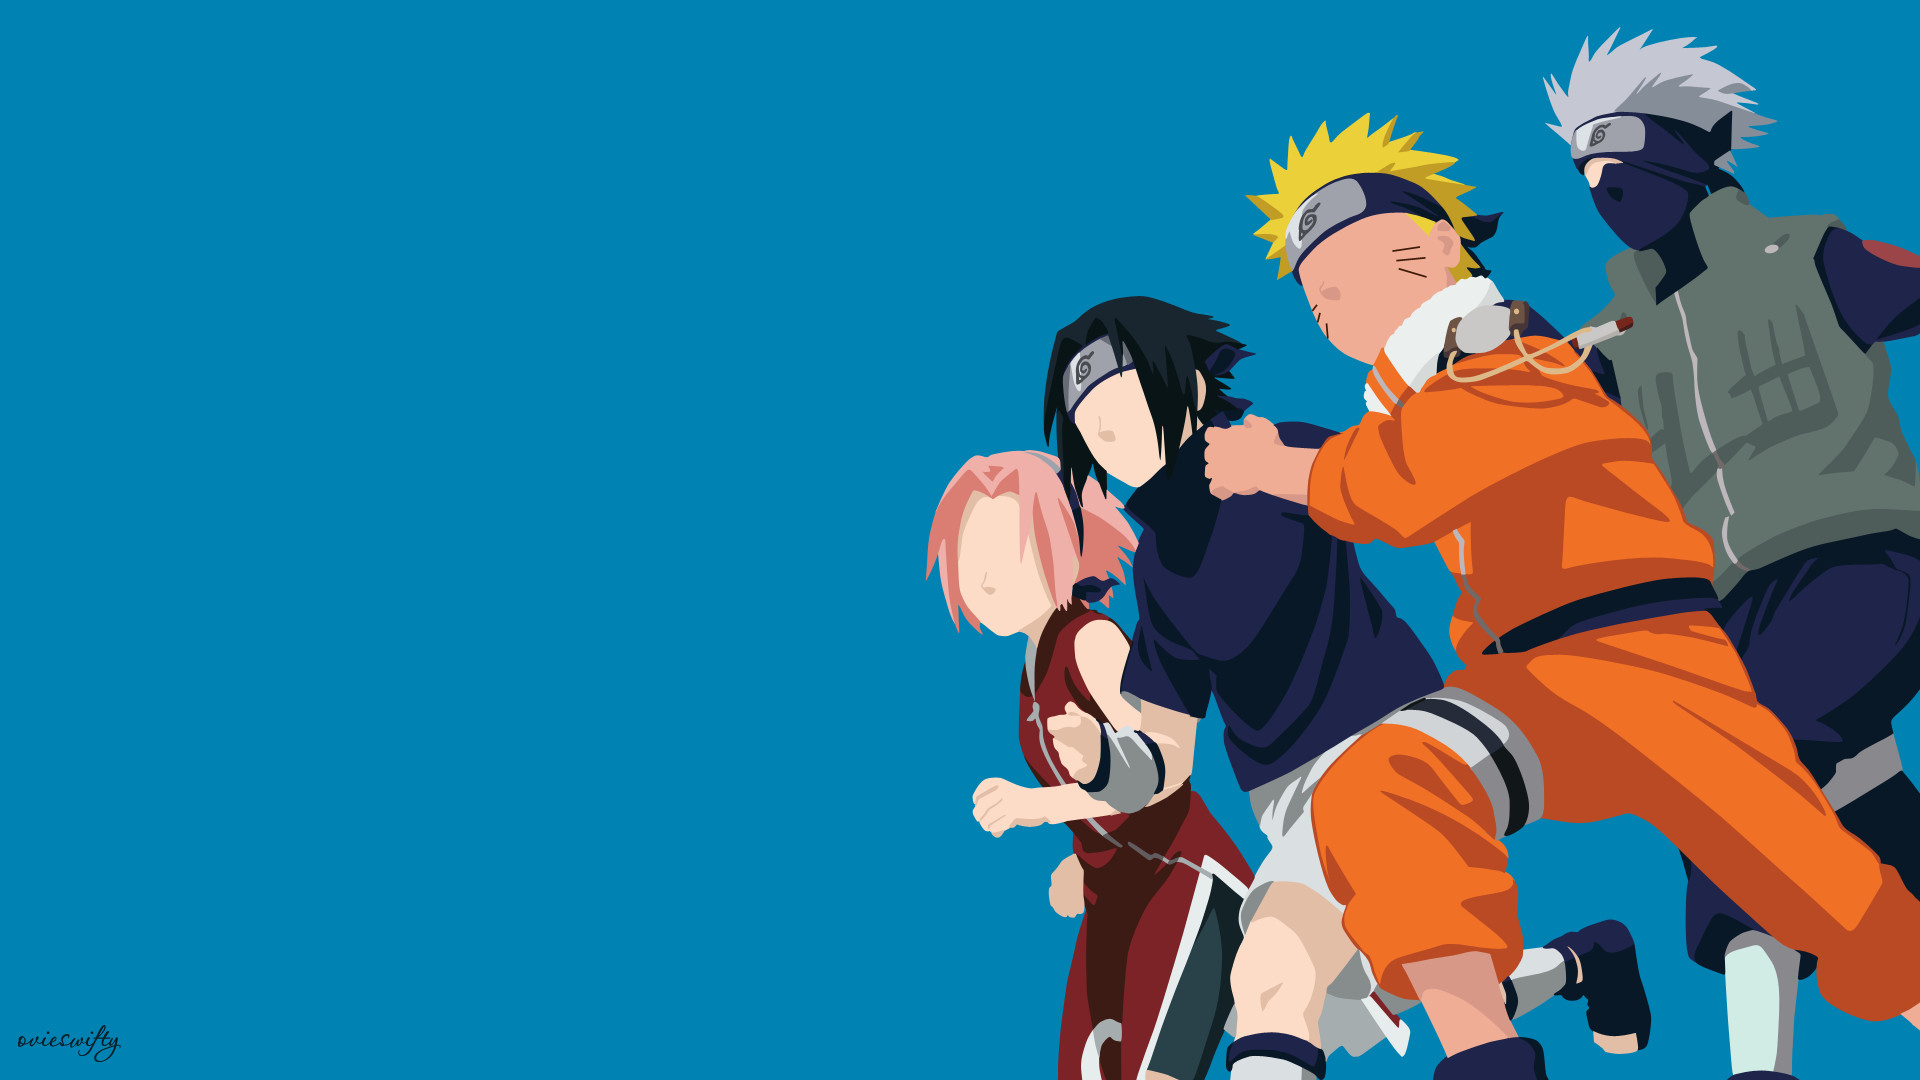 Must see Wallpaper Naruto Cute - 1105102-naruto-team-7-wallpapers-1920x1080-macbook  HD_113318.jpg